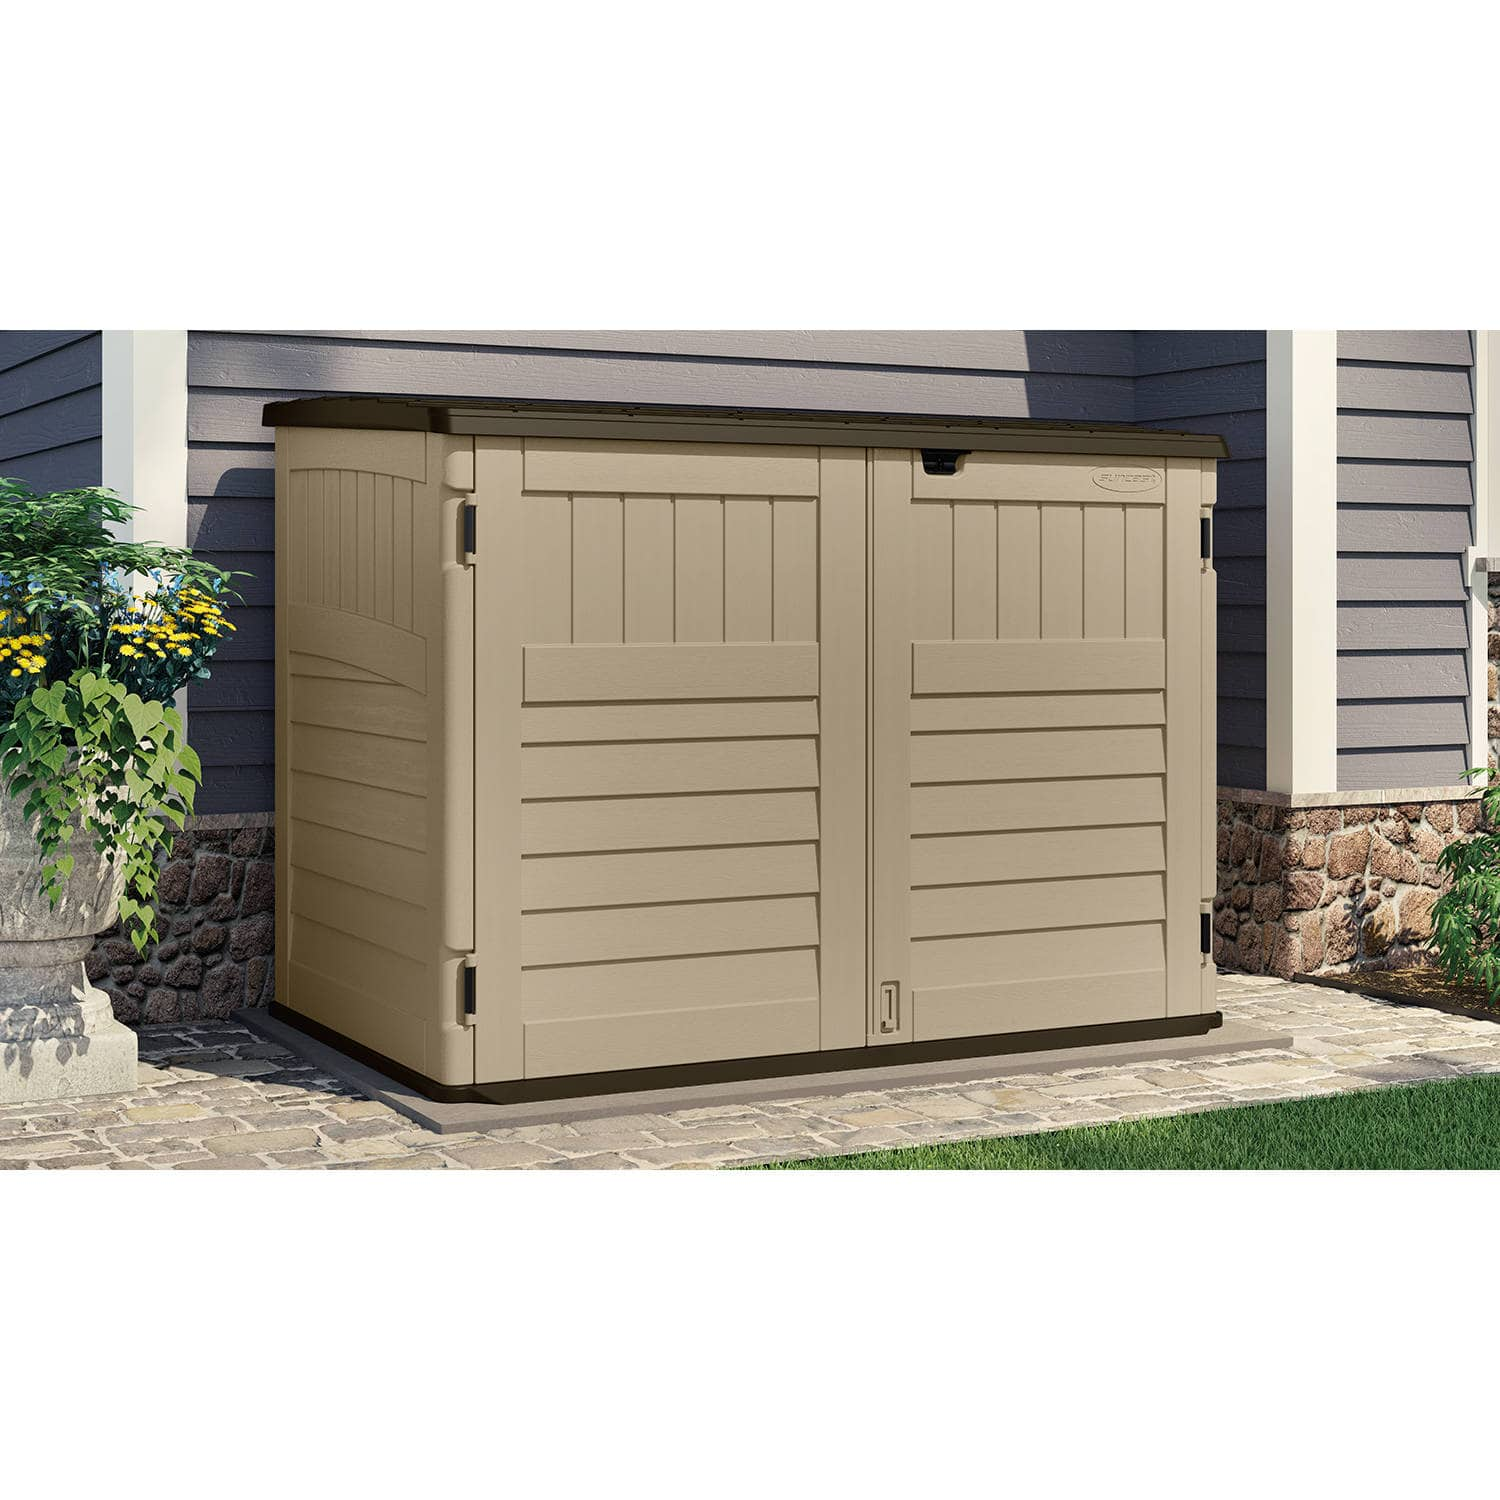 Suncast toter trash can shed sand 70 cu ft 188 75 free instore pickup